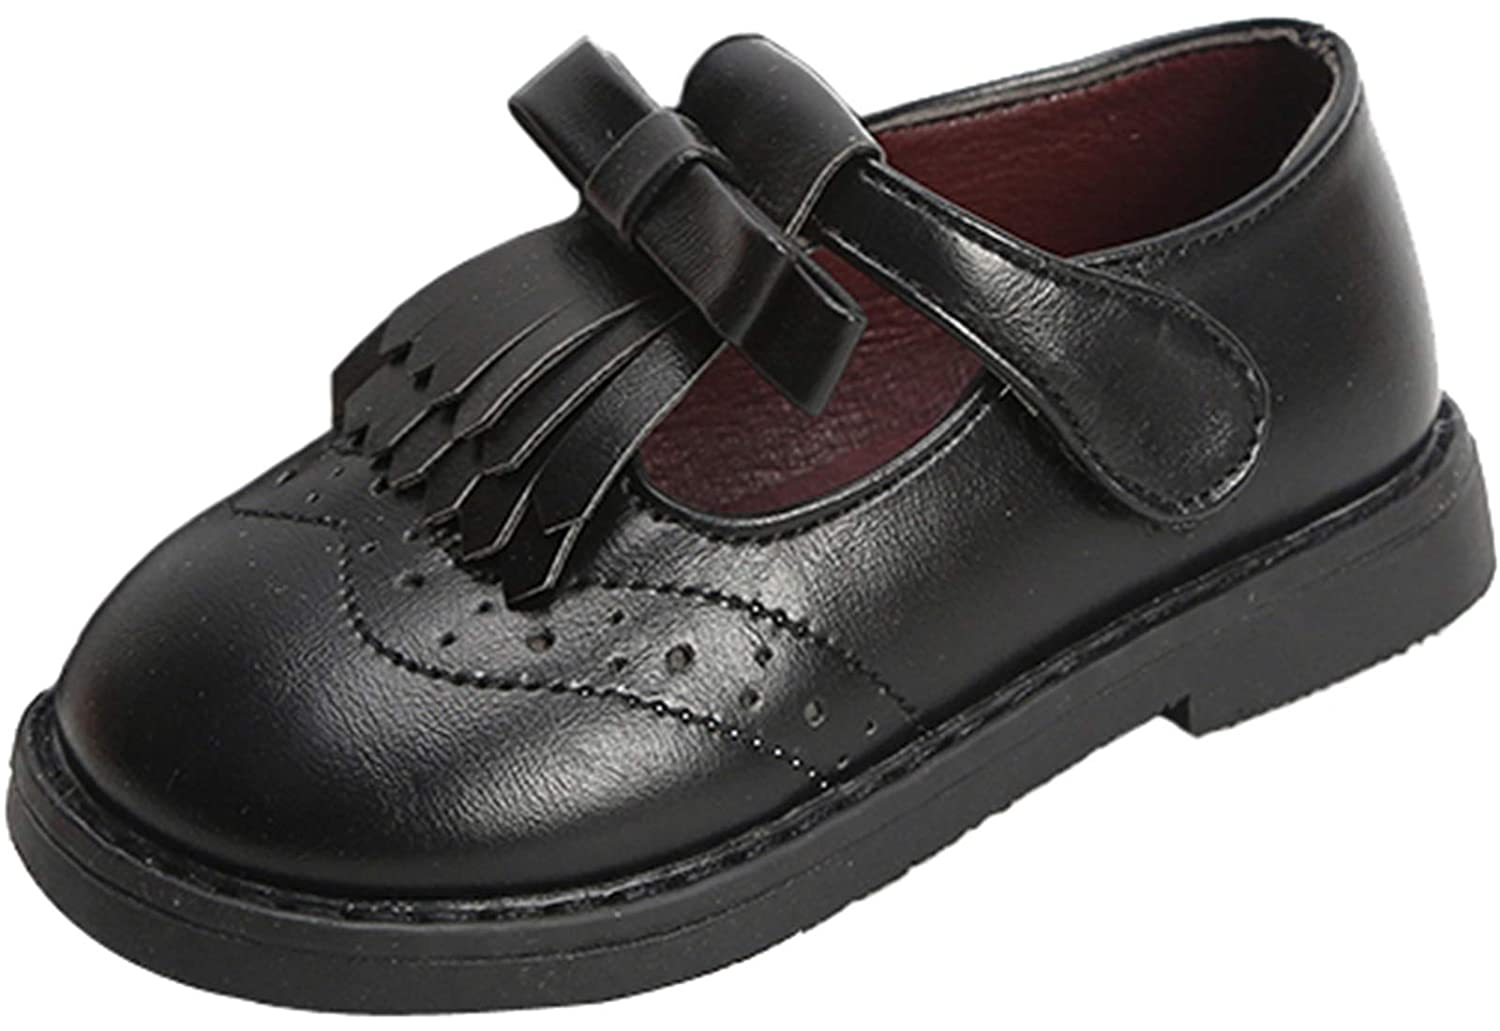 PPXID Toddler Little Girls Princess T-Bar Oxford Dress Shoes Flat Mary Jane